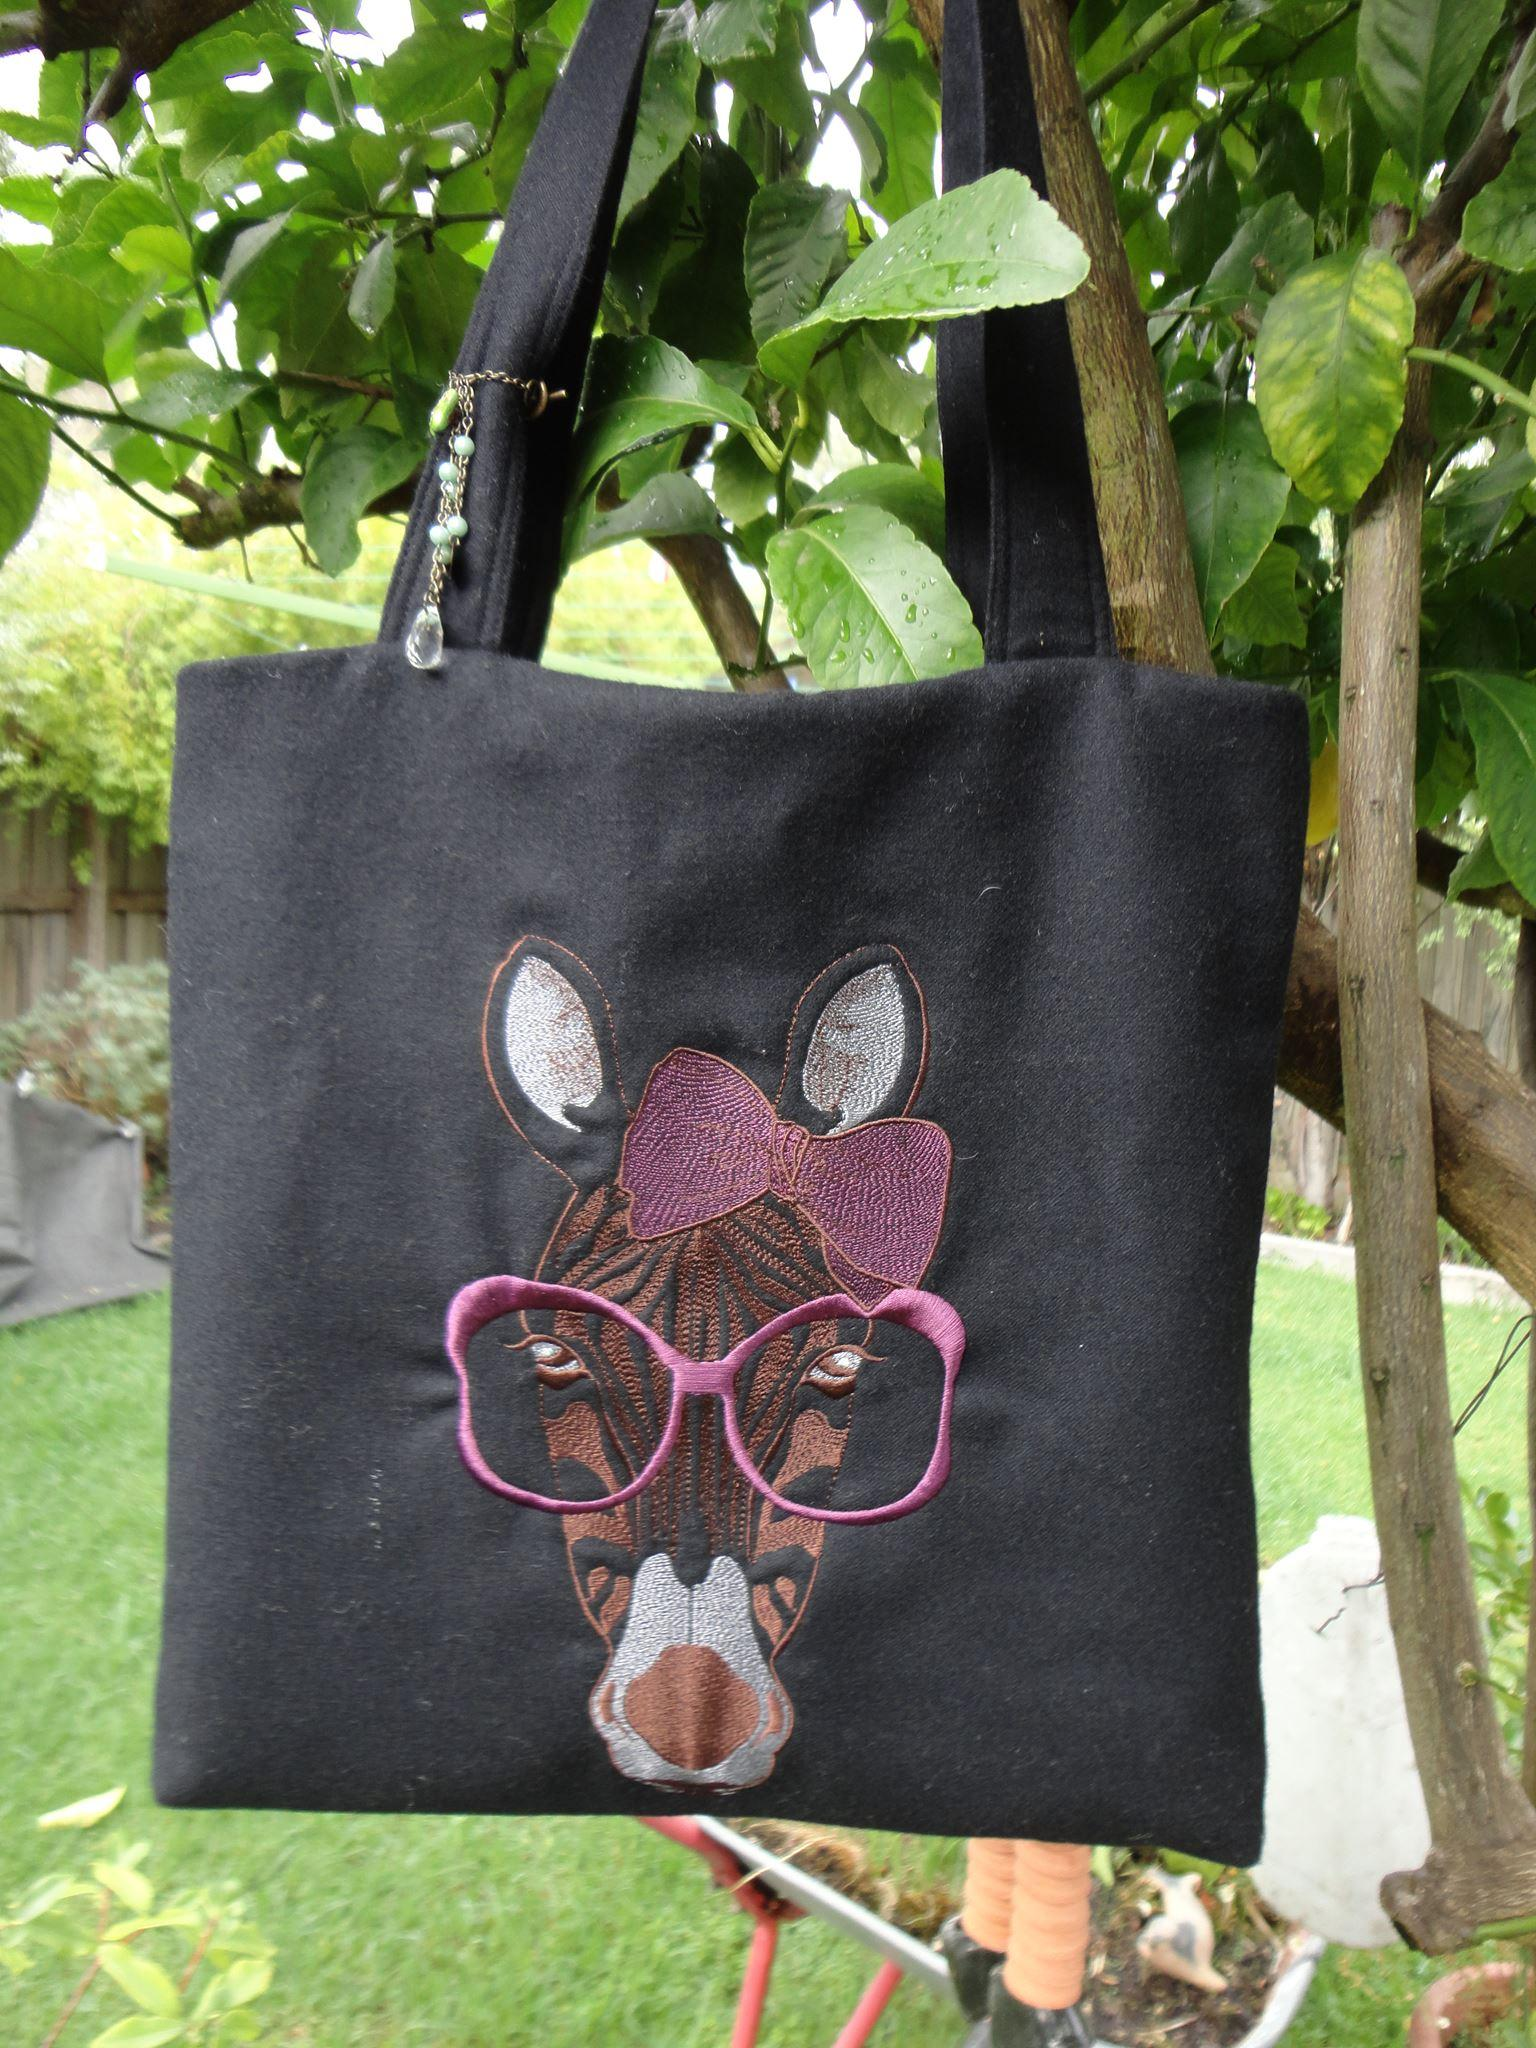 Tote bag with Zebra free embroidery design